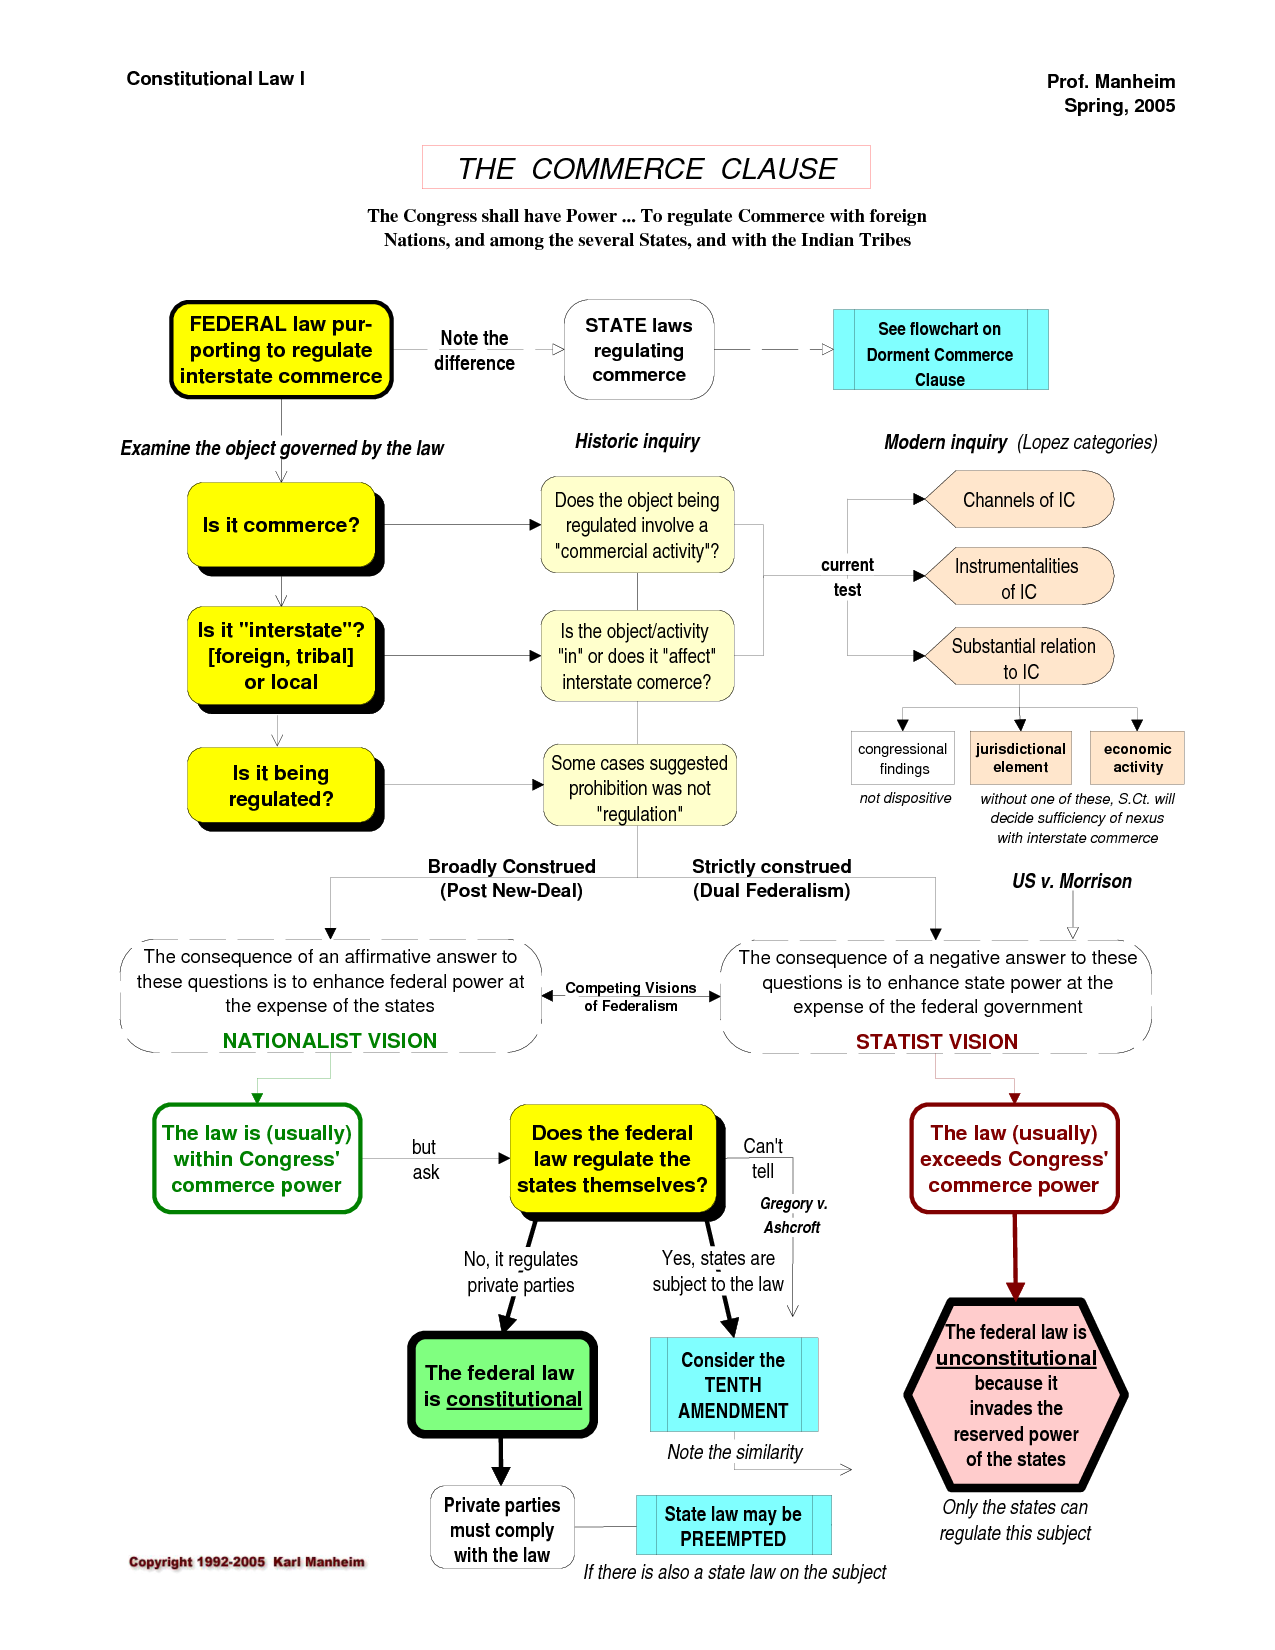 Criminal Procedure Diagram Three Way Wiring Diagrams Constitutional Law Commerce Clause Flowchart More